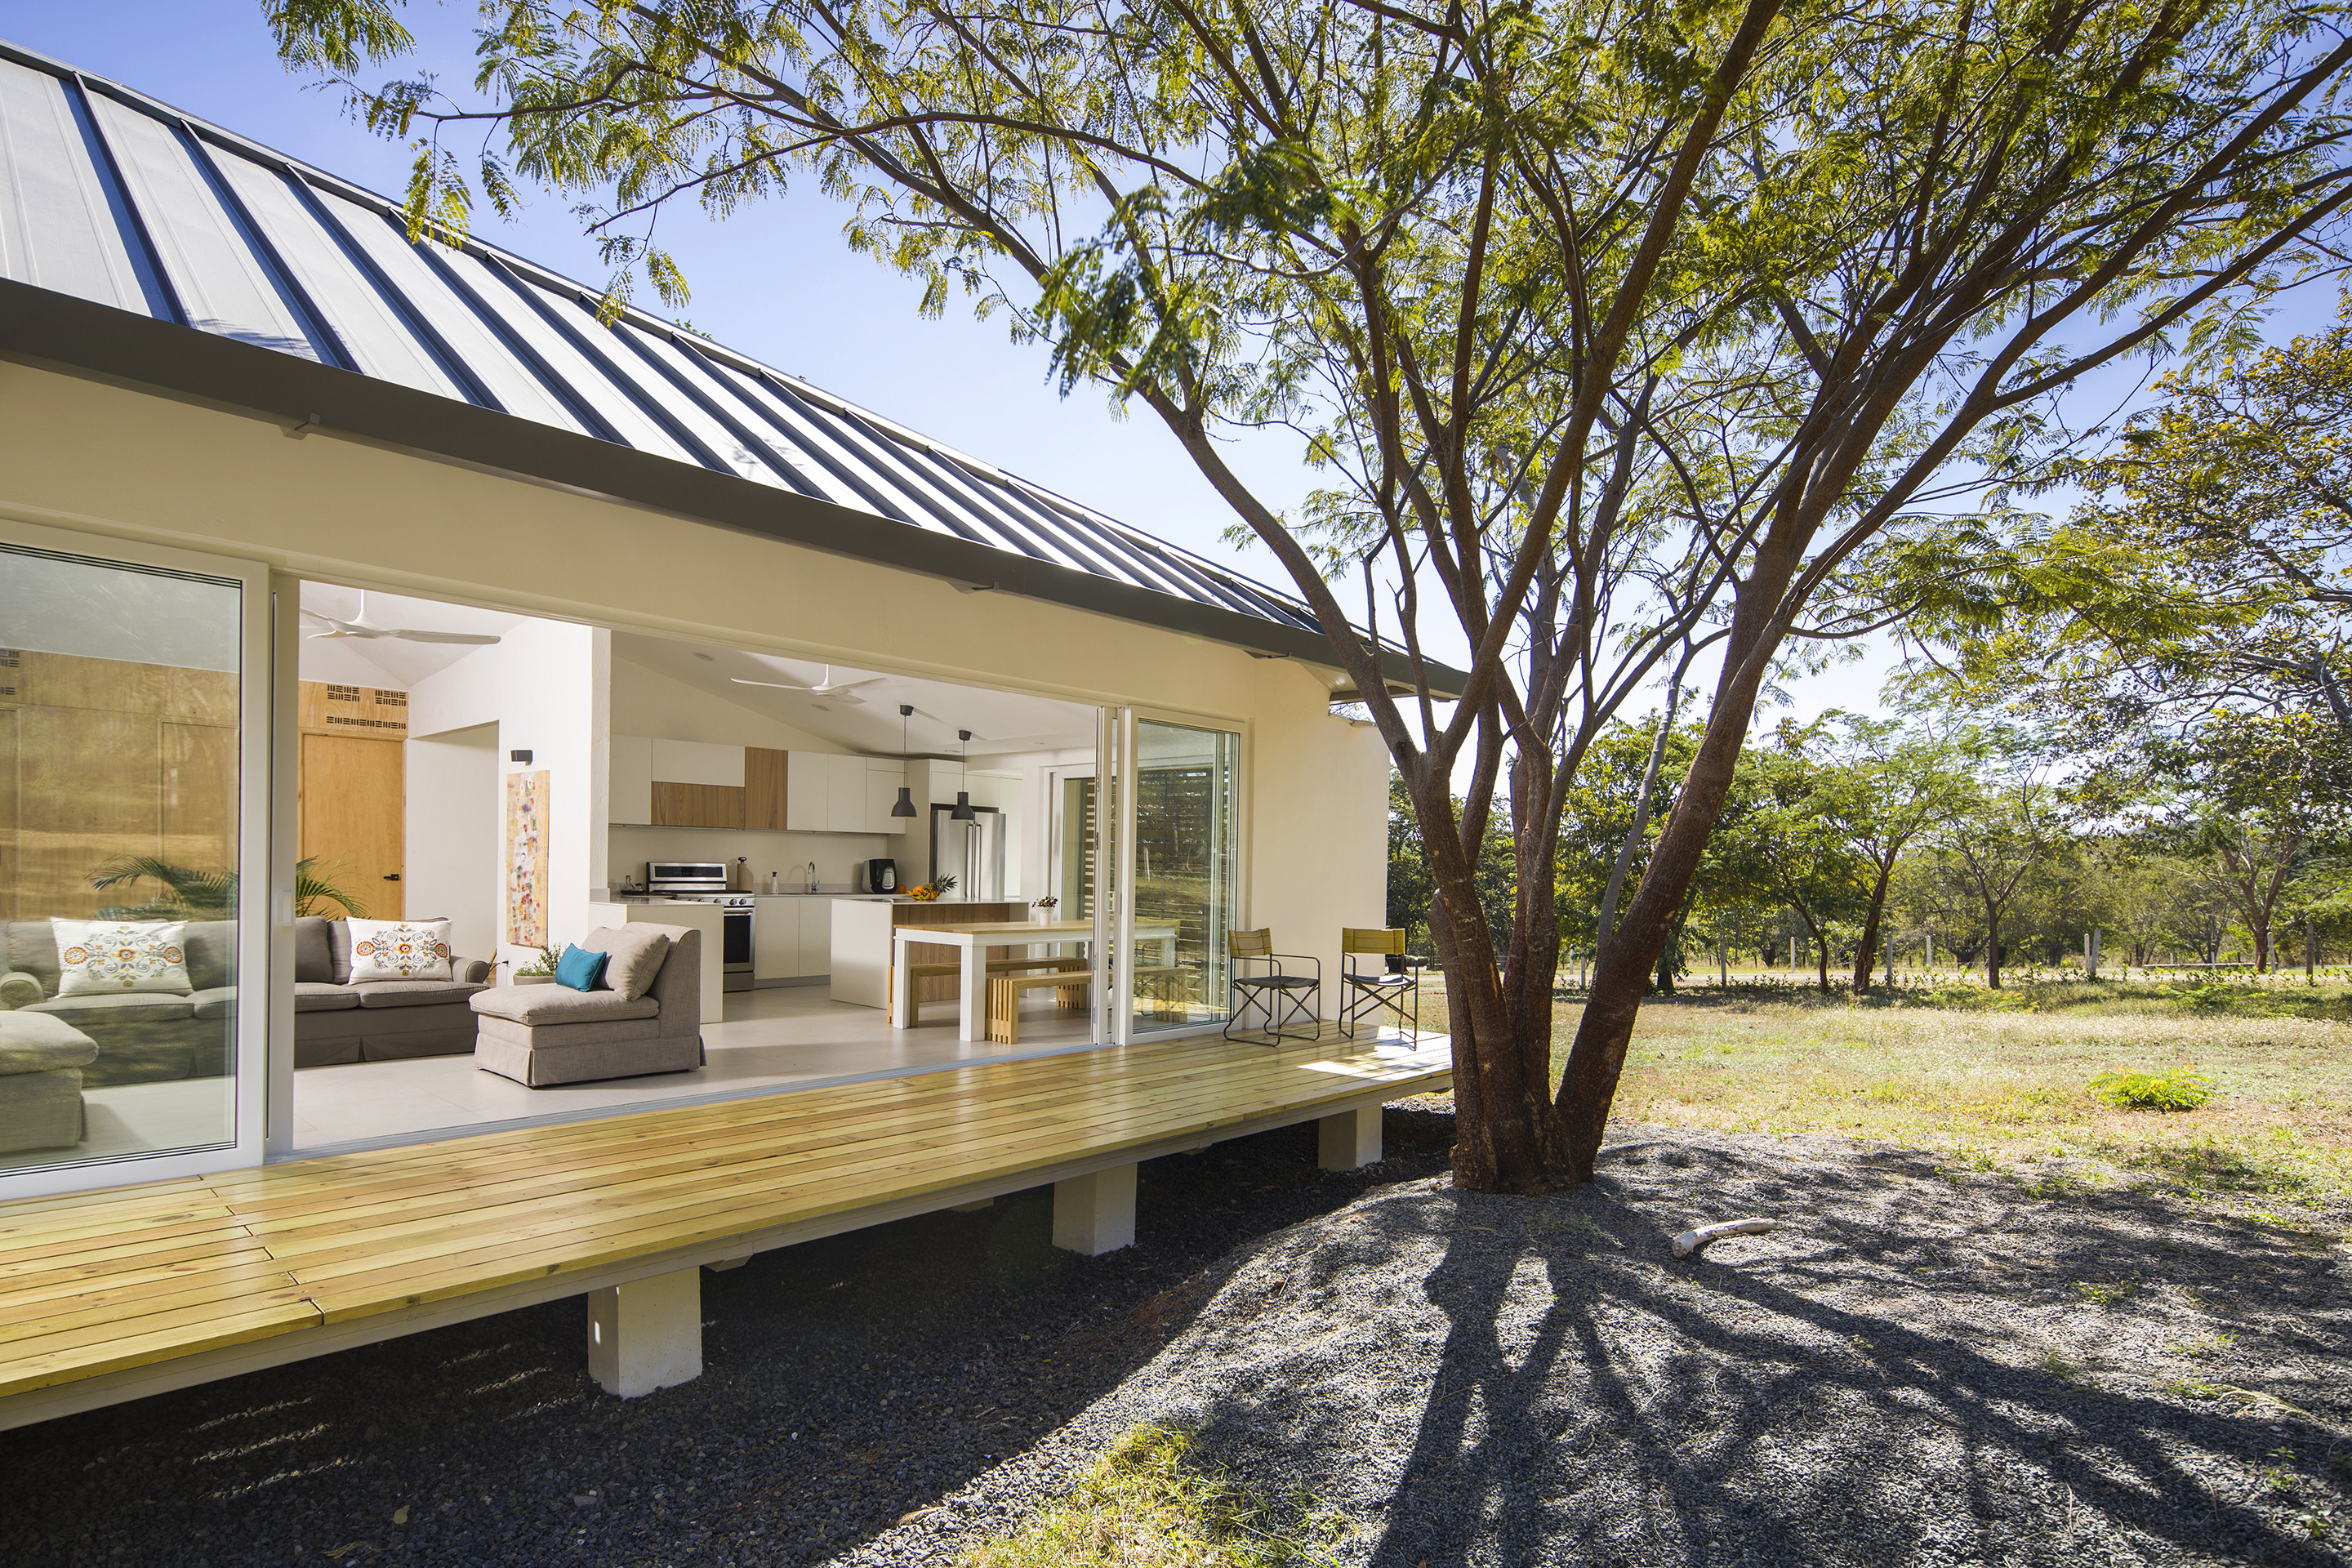 Award-winning Sustainable Architecture with 36 Solar Panels Minutes Away from Playa Grande Guanacaste